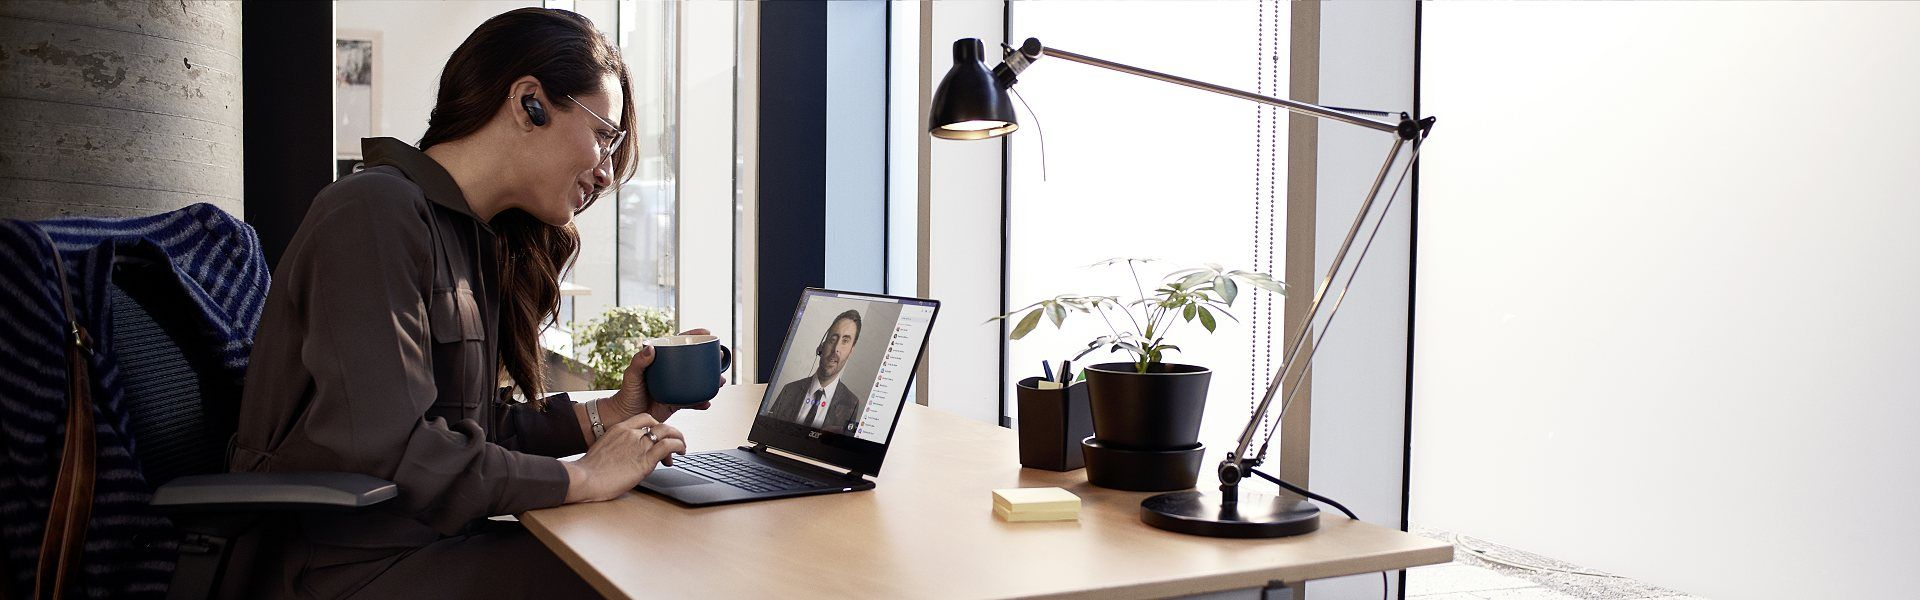 Photo of woman using laptop to video conference